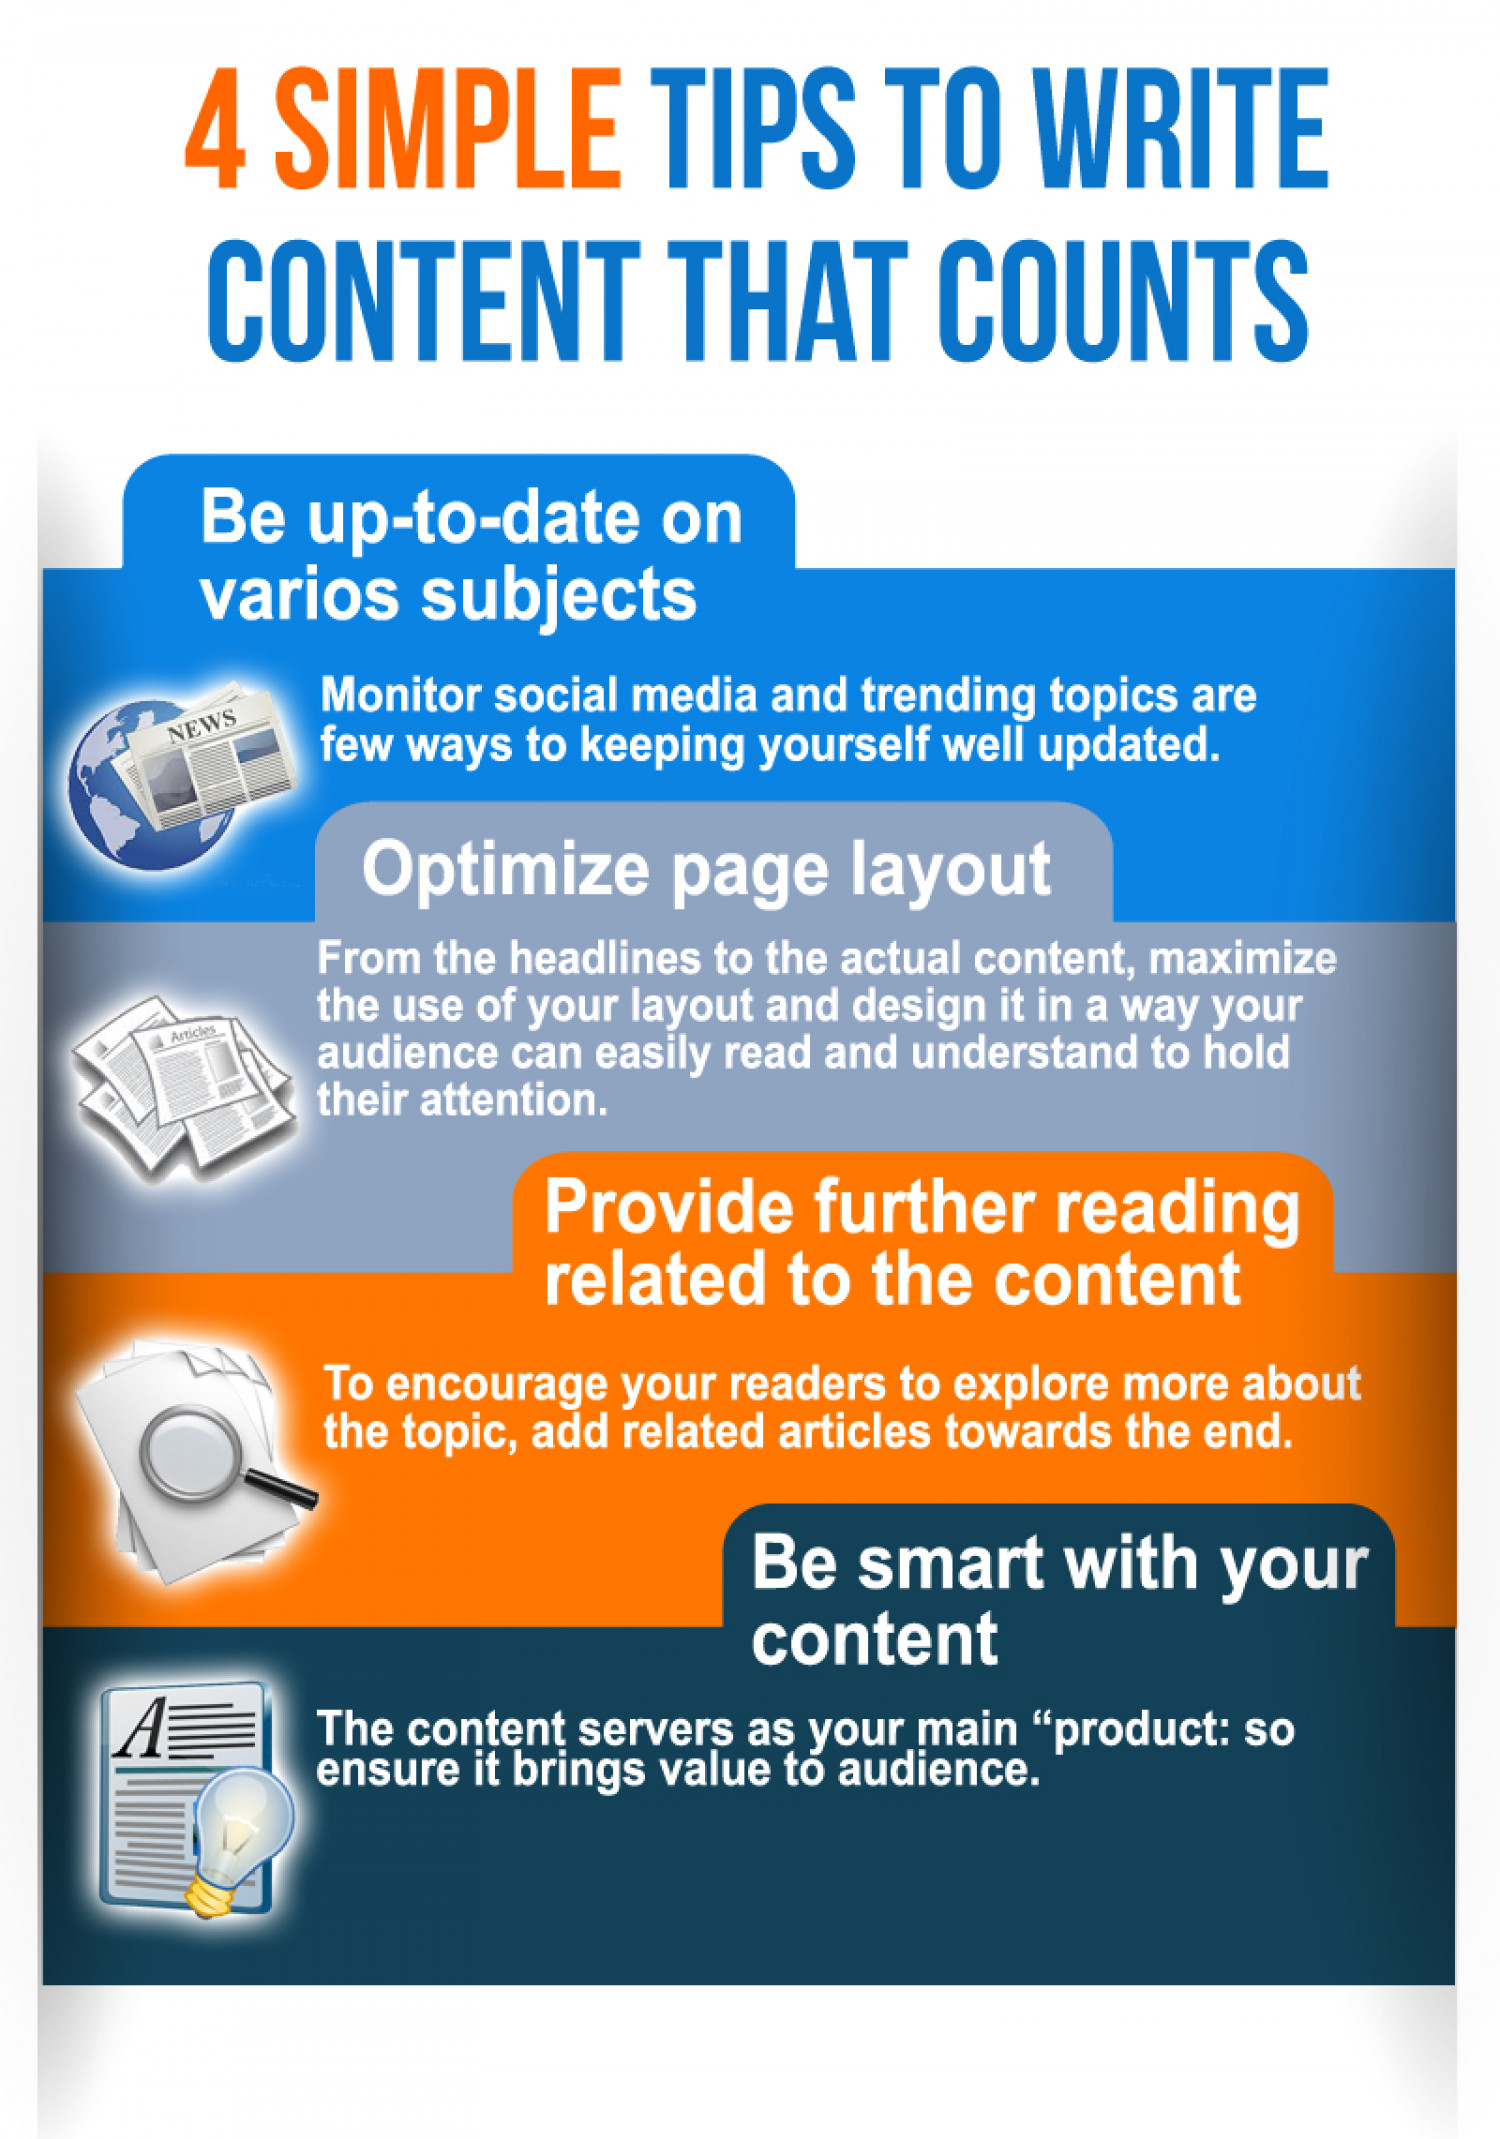 4 Simple Tips To Write Content That Counts Infographic